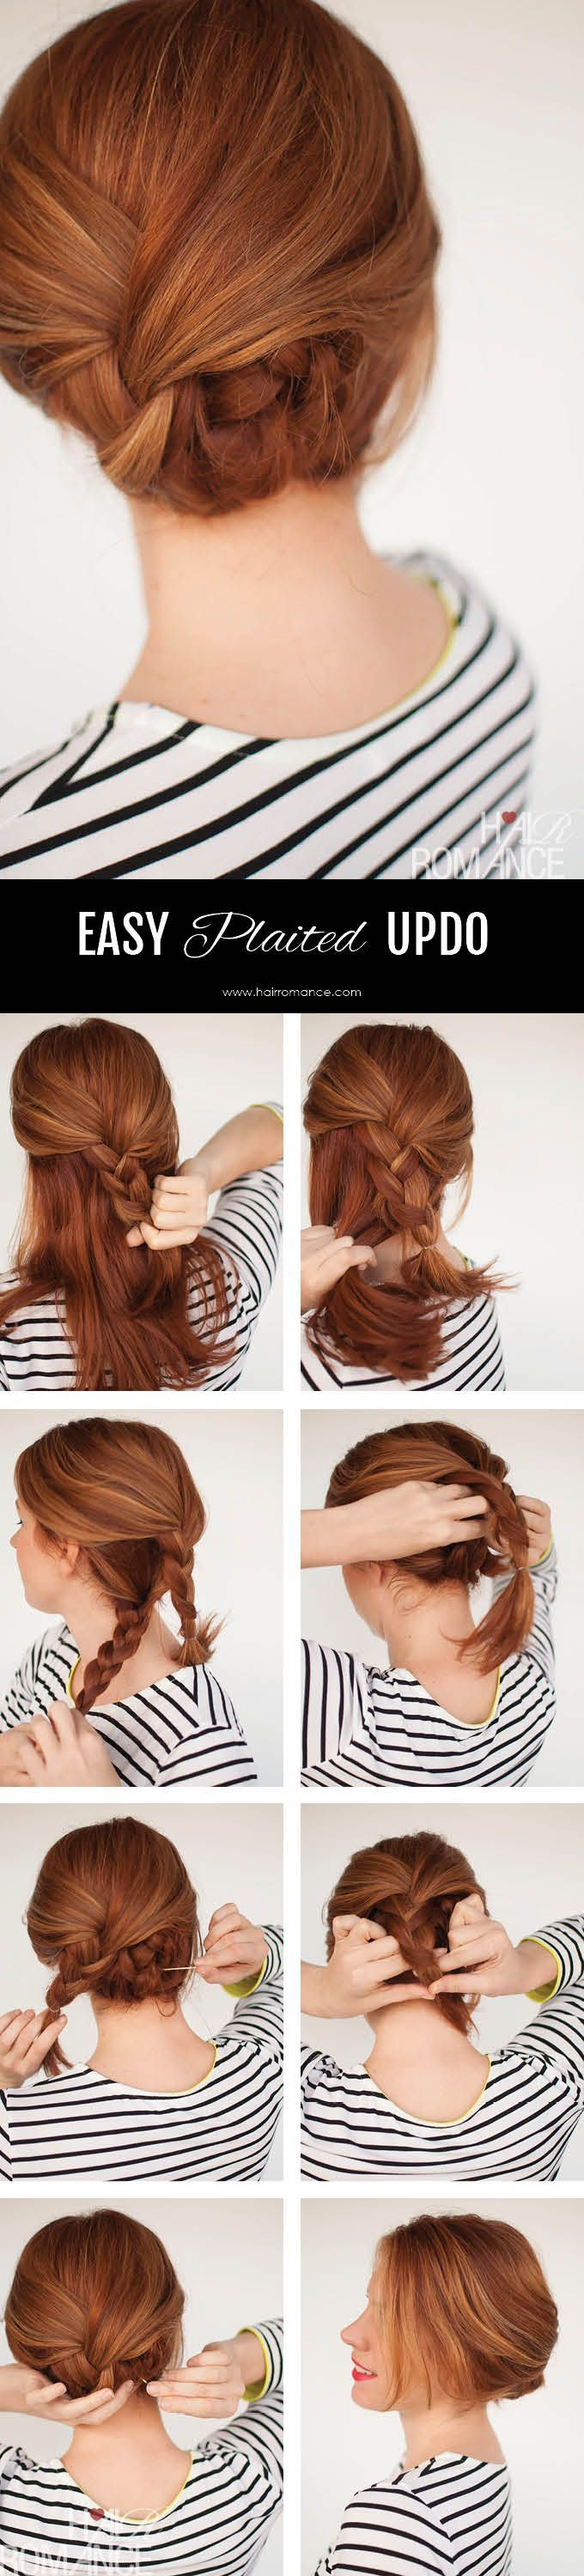 Enjoyable 1000 Ideas About Easy Braided Updo On Pinterest Updo For Long Short Hairstyles Gunalazisus